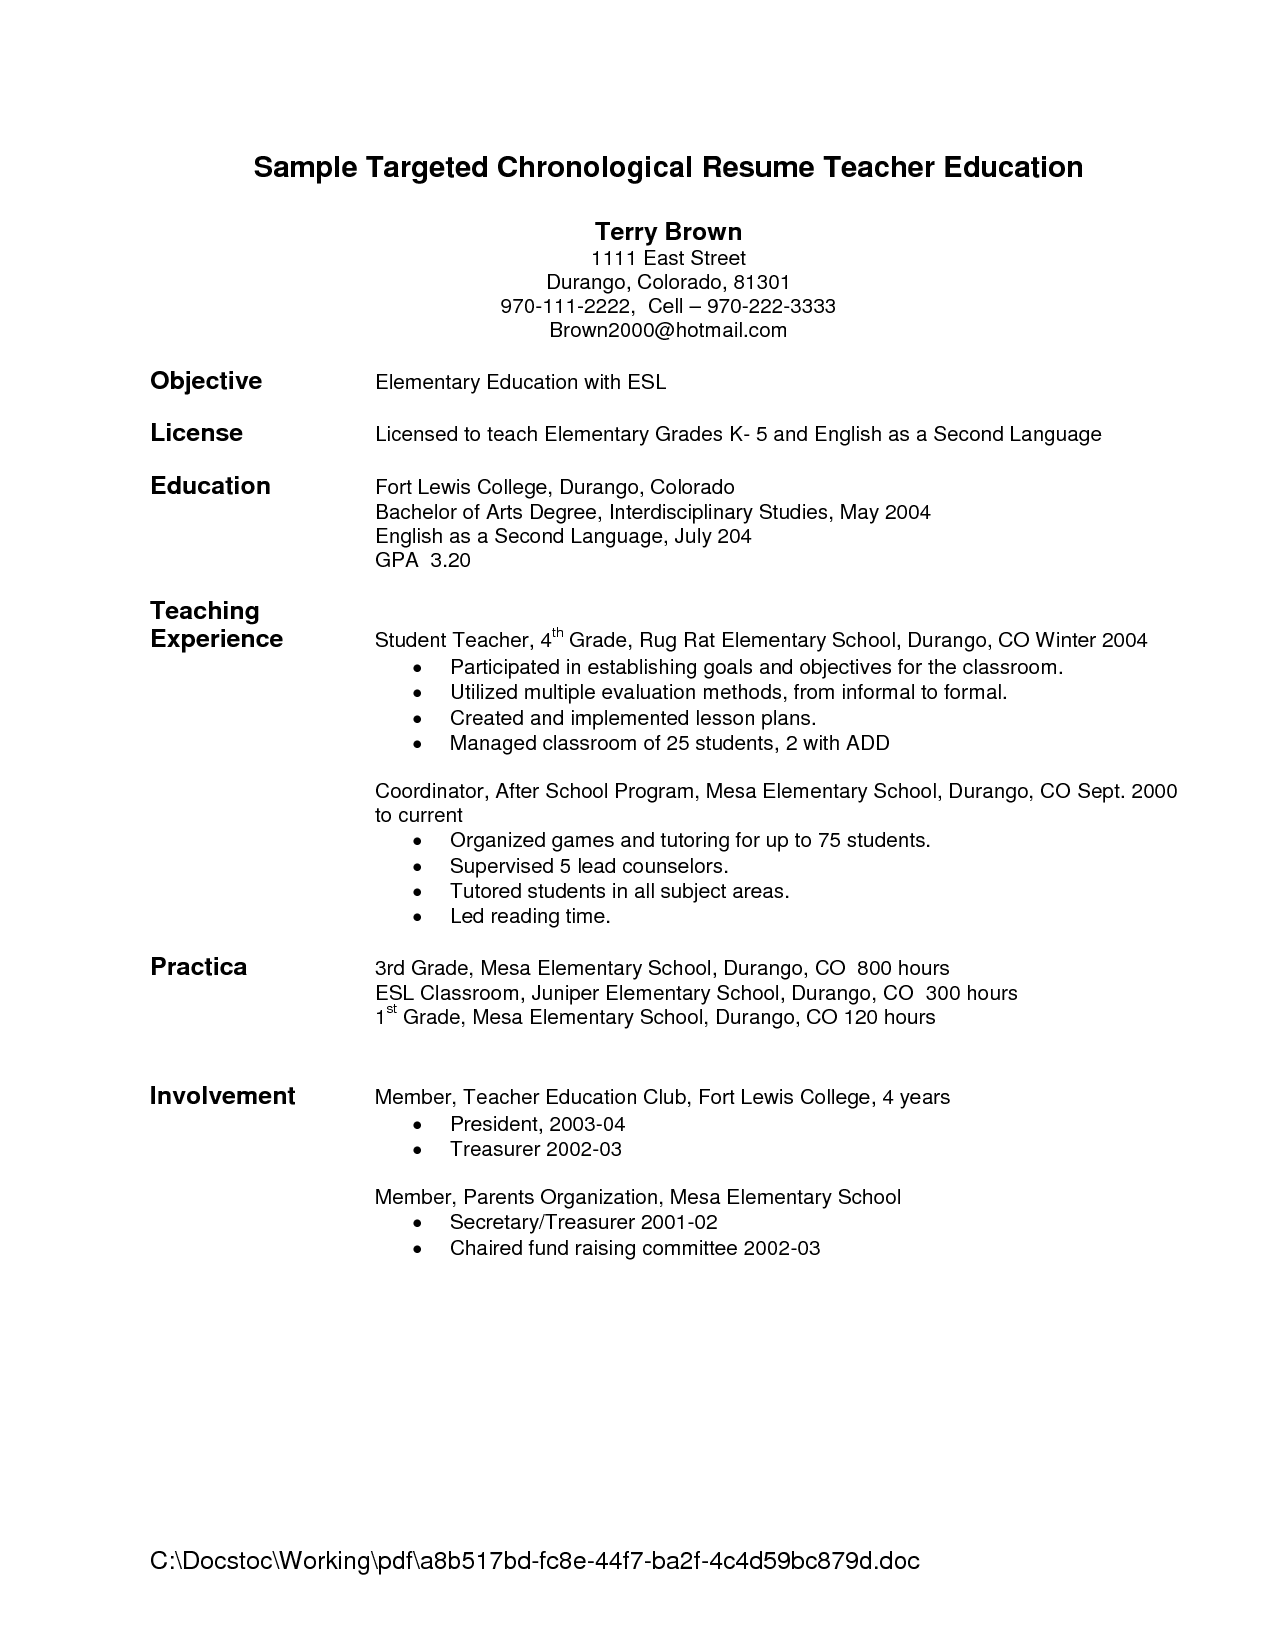 Ontario Teacher Resume Sample 15 Objective Resume Examples Samplebusinessresume